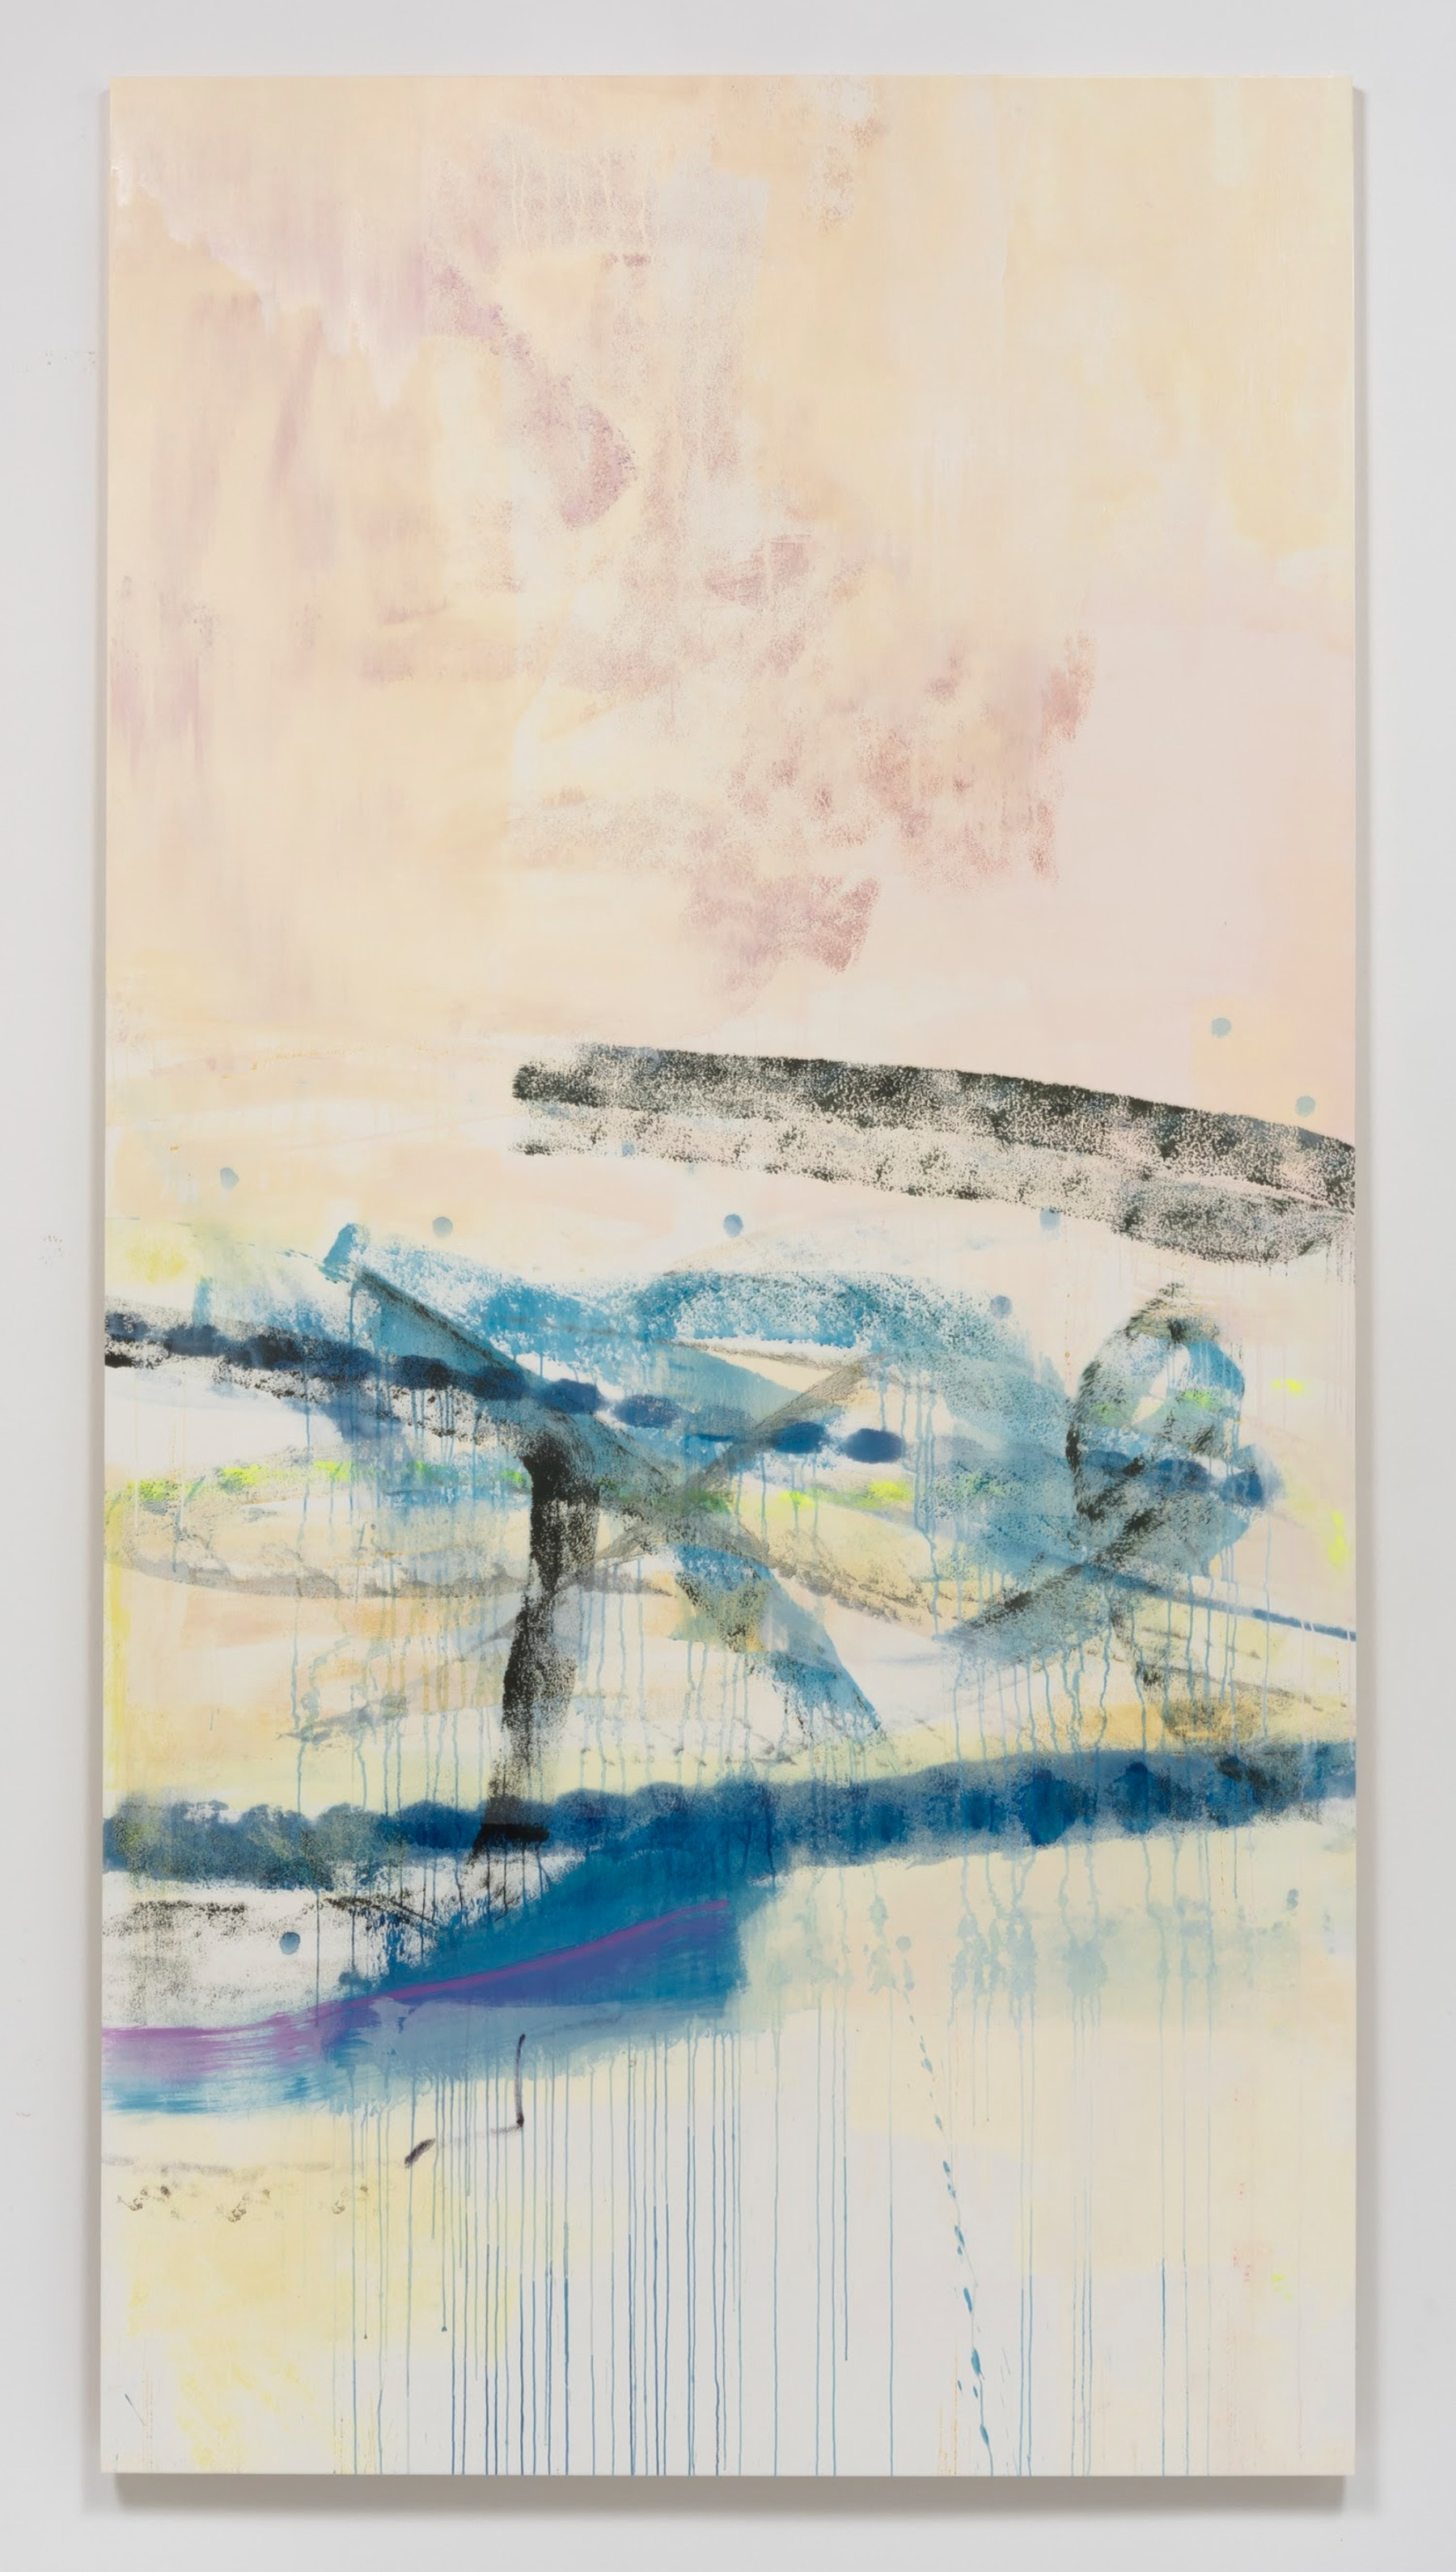 """Monique Van Genderen """"Untiled,"""" 2017 Oil and pigment on paper on aluminum panel 96"""" x 50"""" x 1 ¹⁄₂"""" [HxWxD] (243.84 x 127 x 3.81 cm) Inventory #VGE324 Courtesy of the artist and Vielmetter Los Angeles Photo credit: Robert Wedemeyer"""